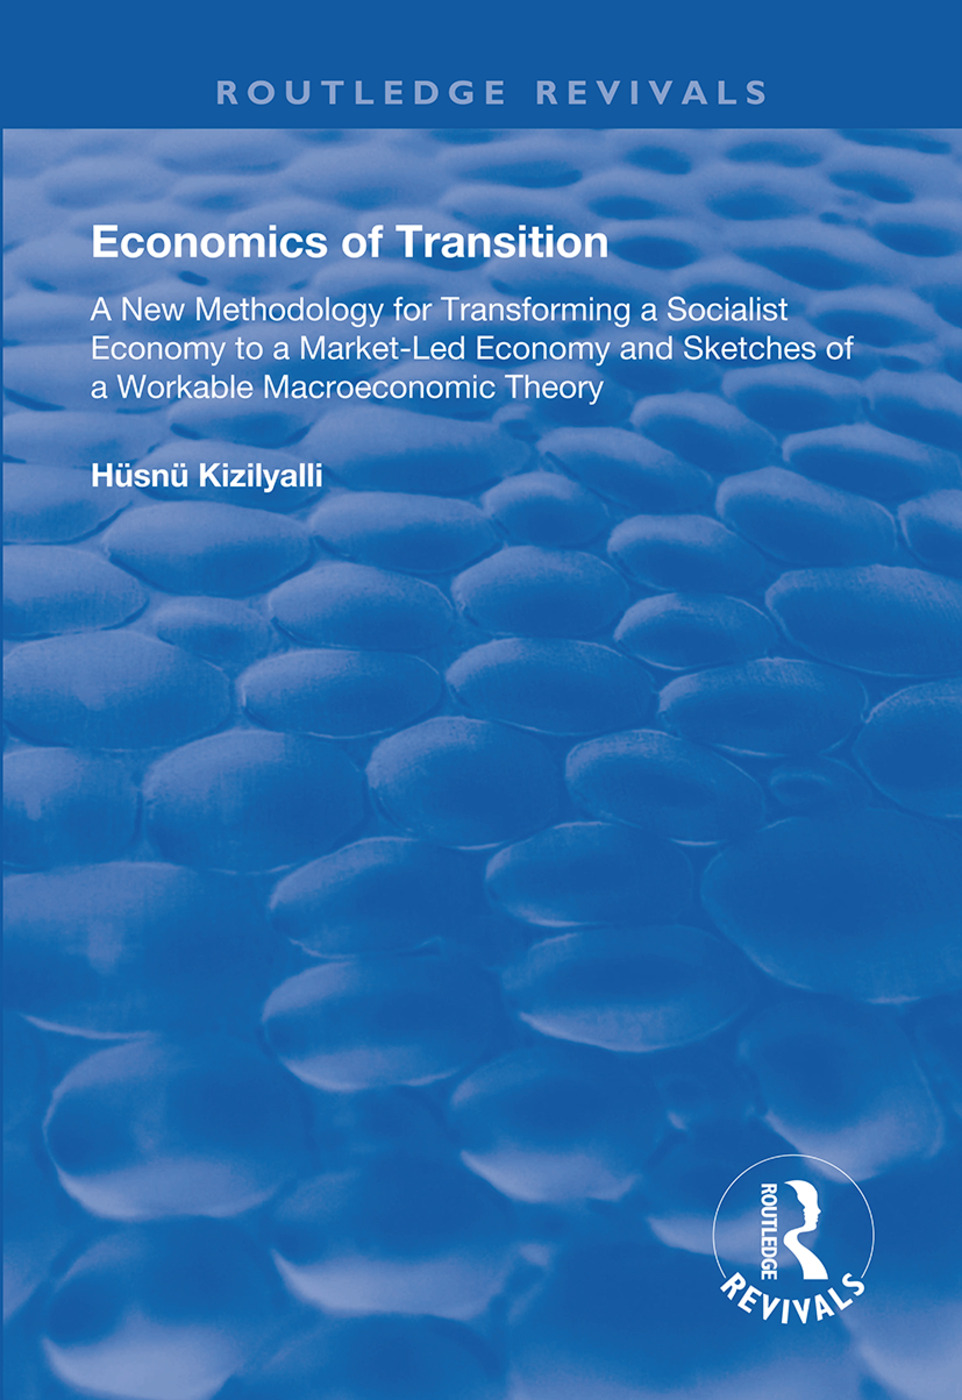 Economics of Transition: A New Methodology for Transforming a Socialist Economy to a Market-led Economy book cover